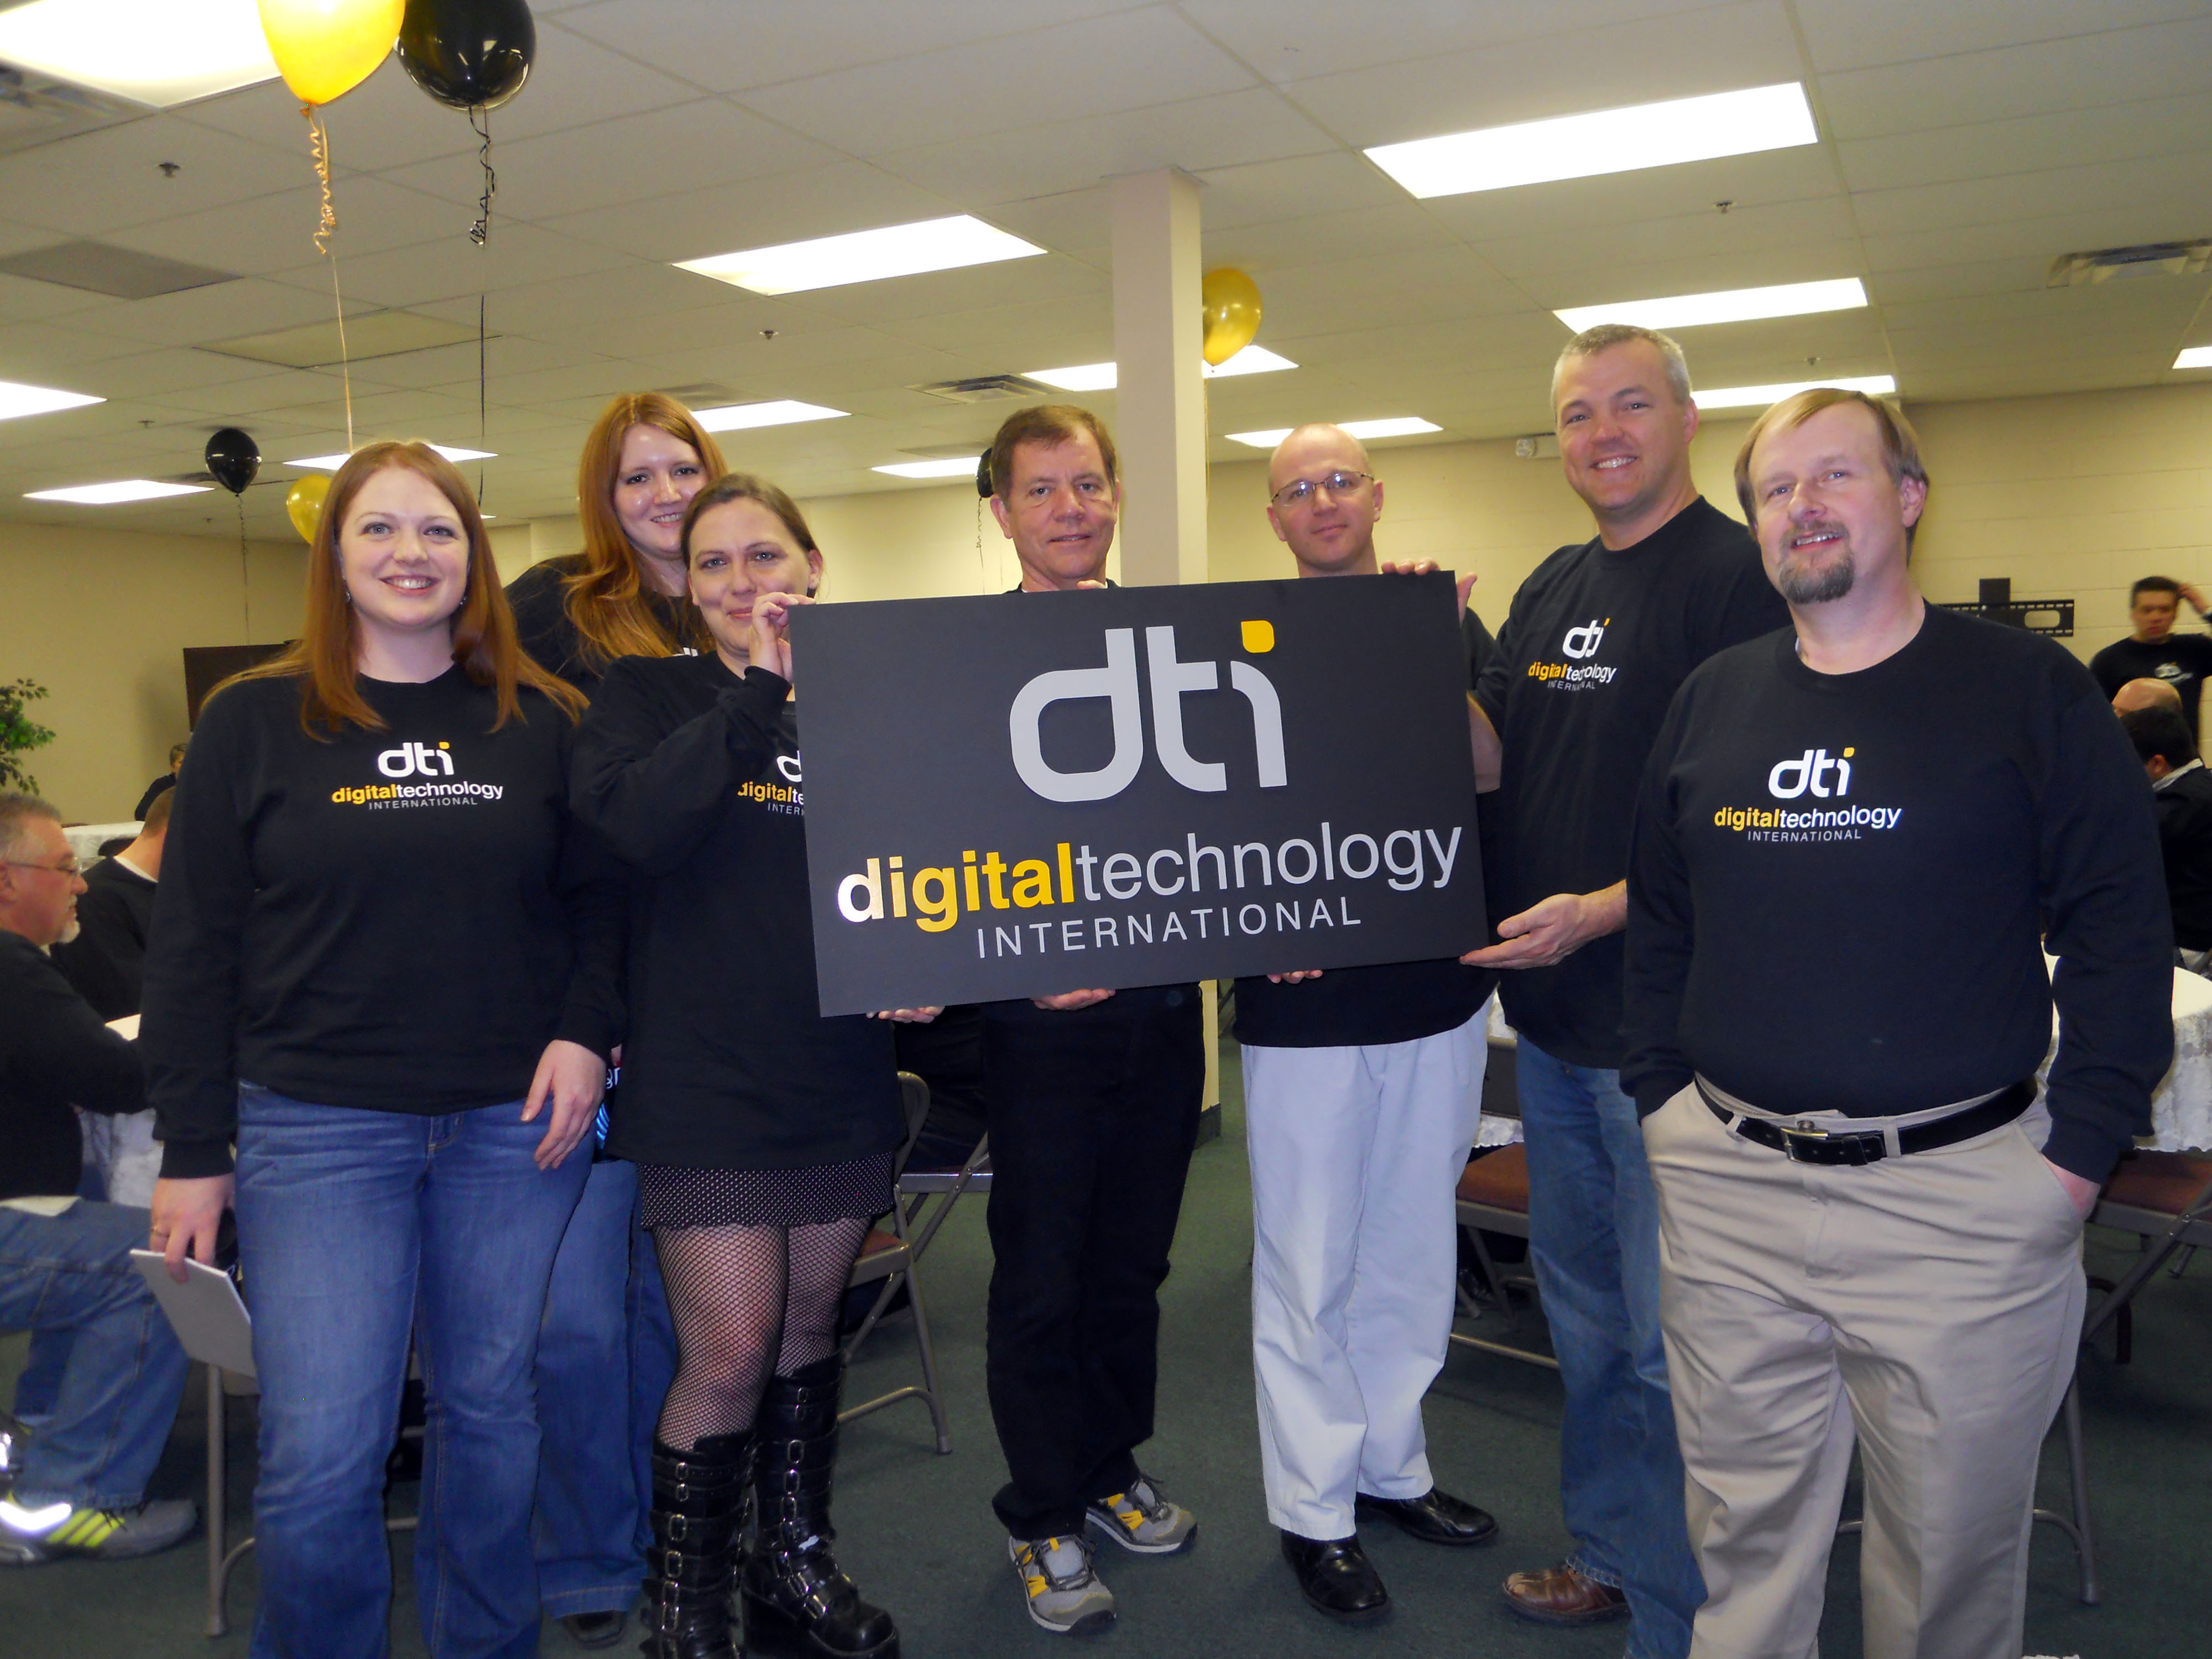 A party at DTI to celebrate our new logo design.